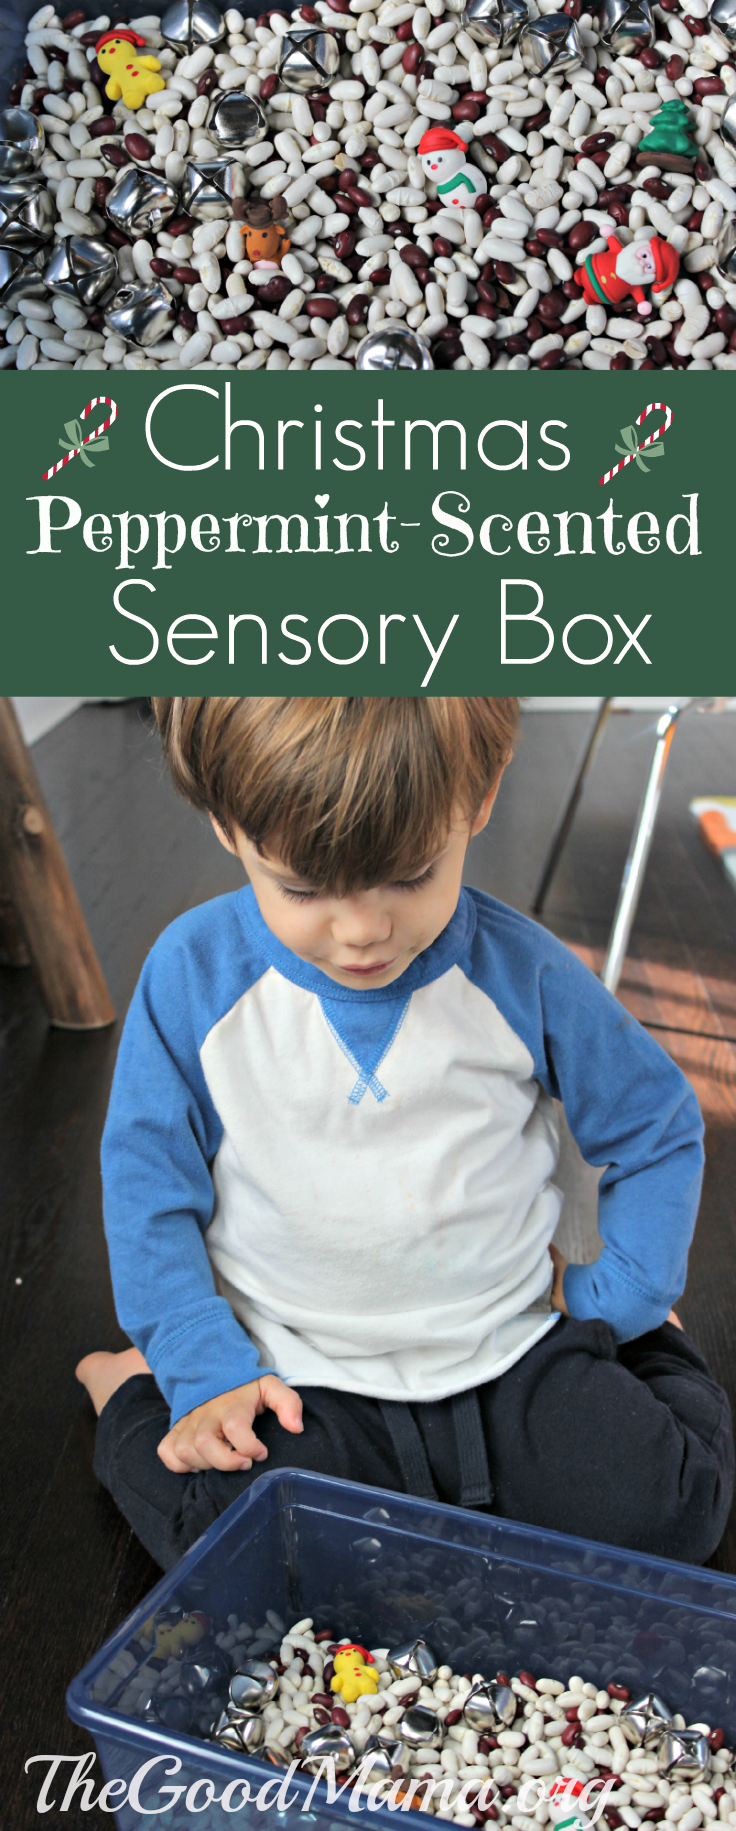 Christmas Peppermint-scented Sensory Box for Toddlers